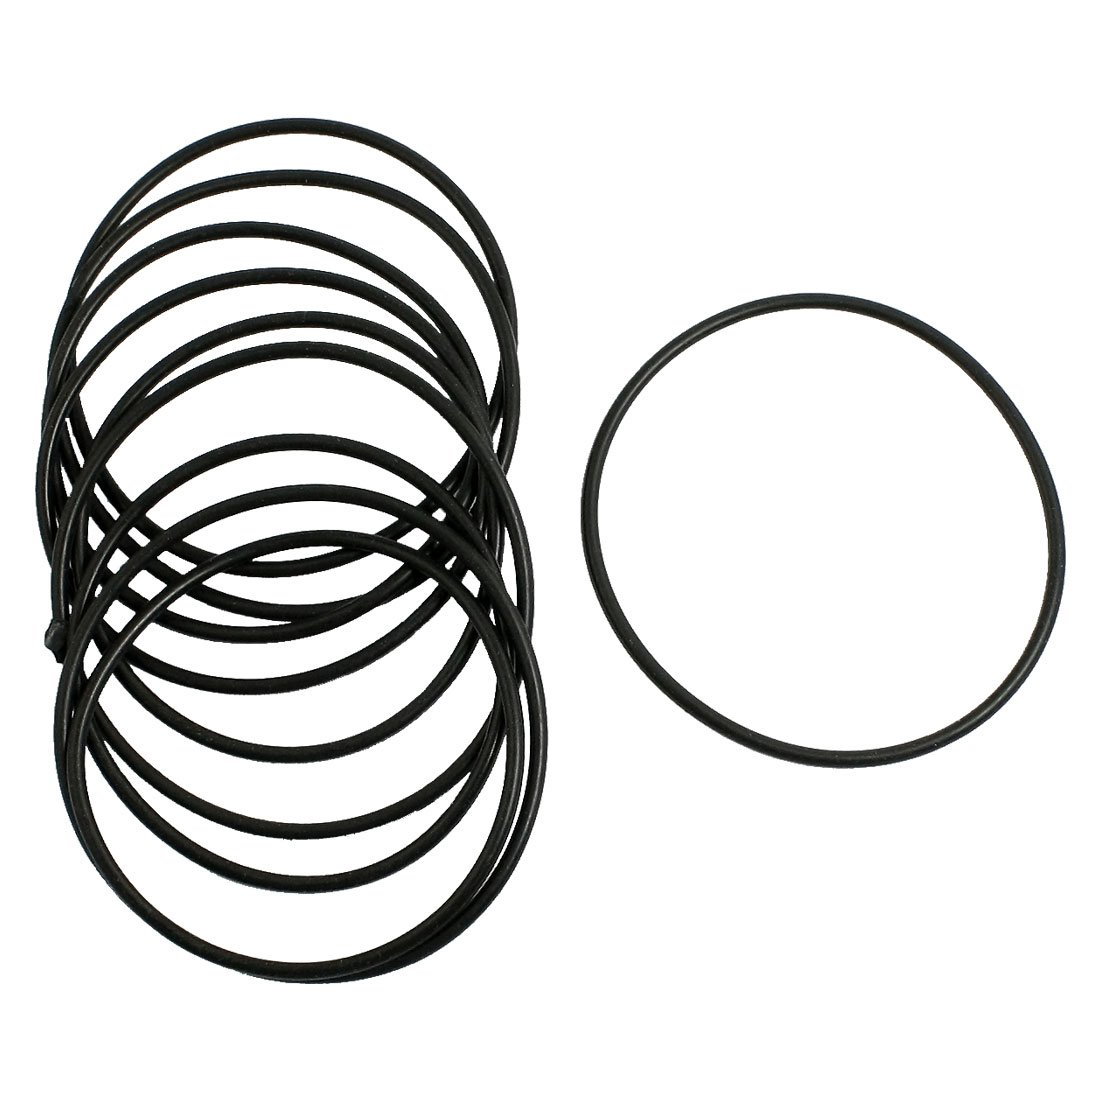 Uxcell Rubber Sealing Oil Filter O Rings Gasket (10 Piece), Black, 2.5mm x 65mm Dragonmarts Co. Ltd. / Uxcell a13030700ux0507